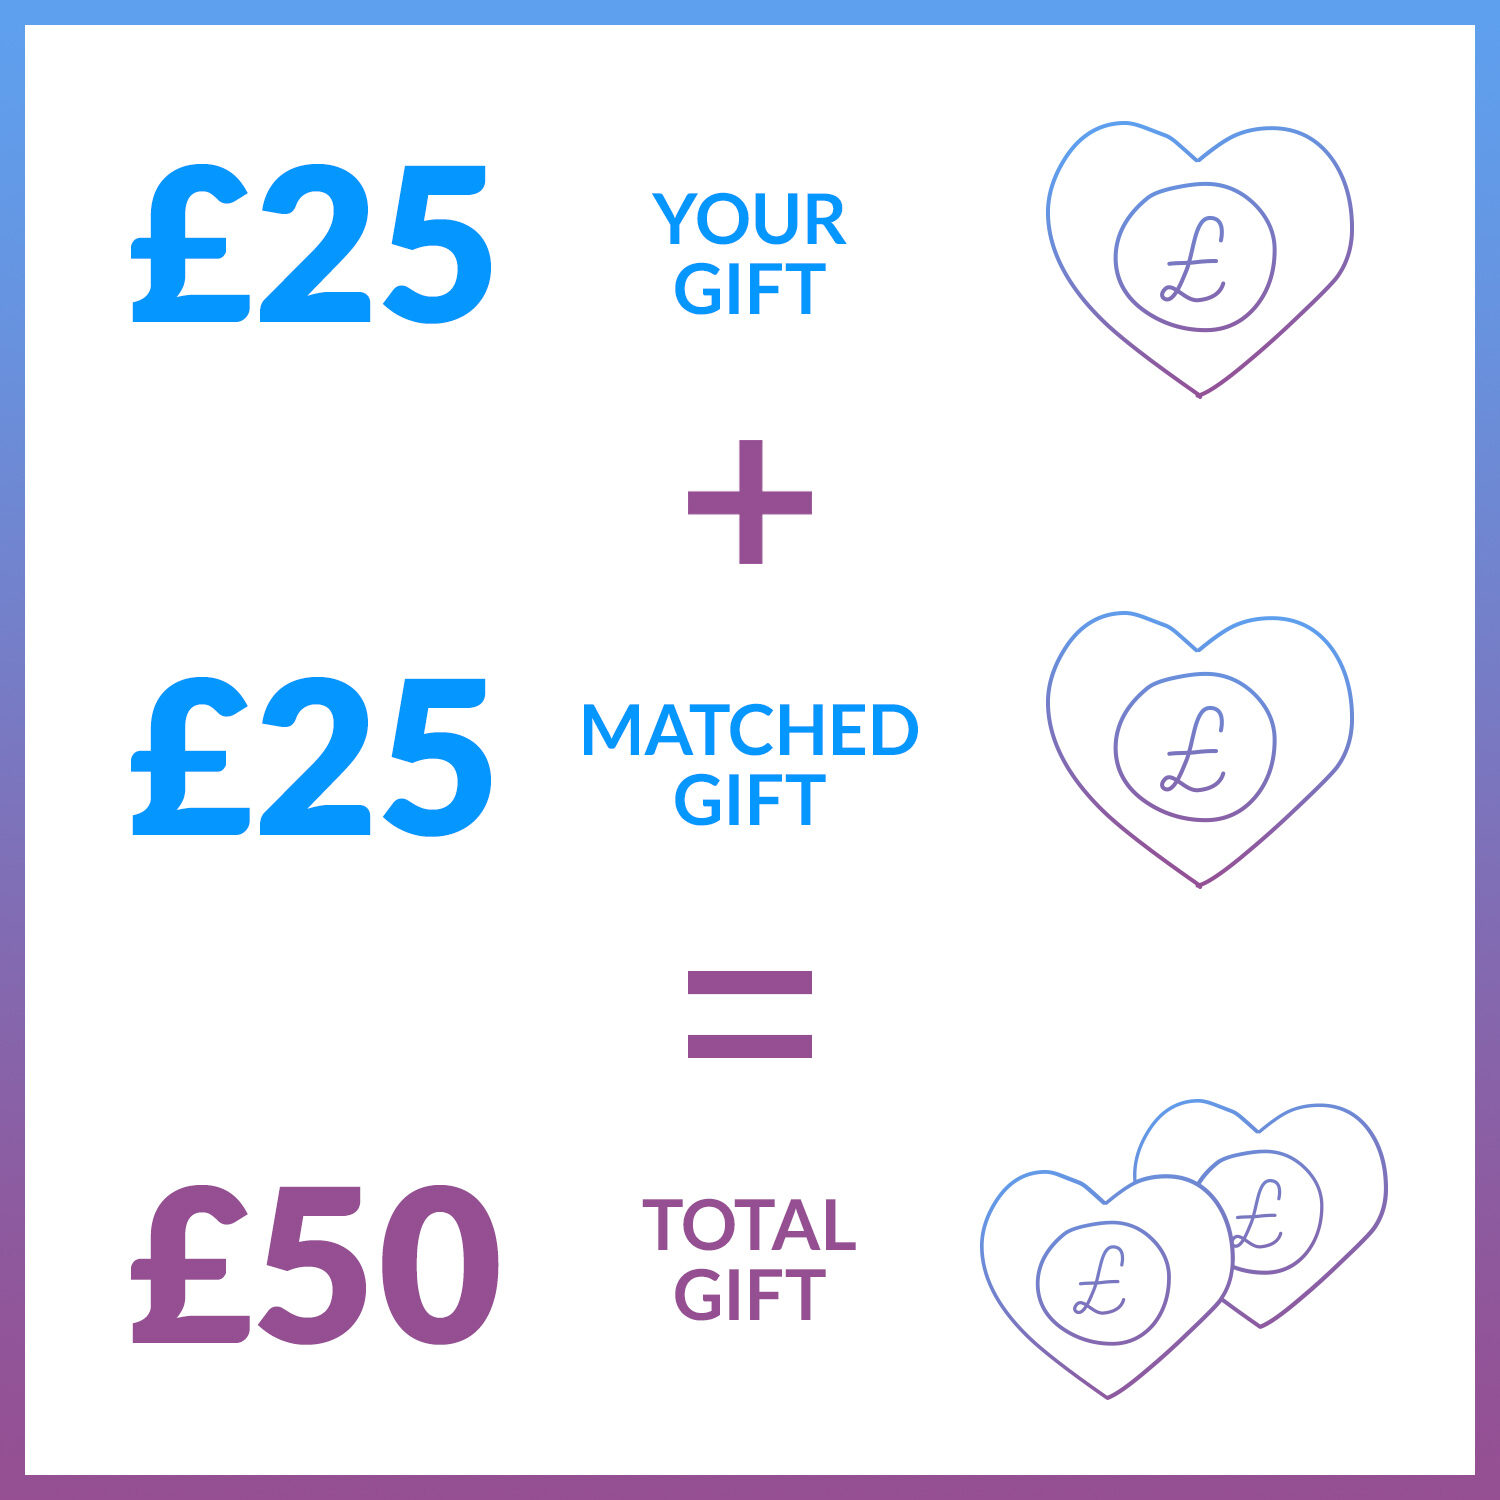 Matched Donation Explained